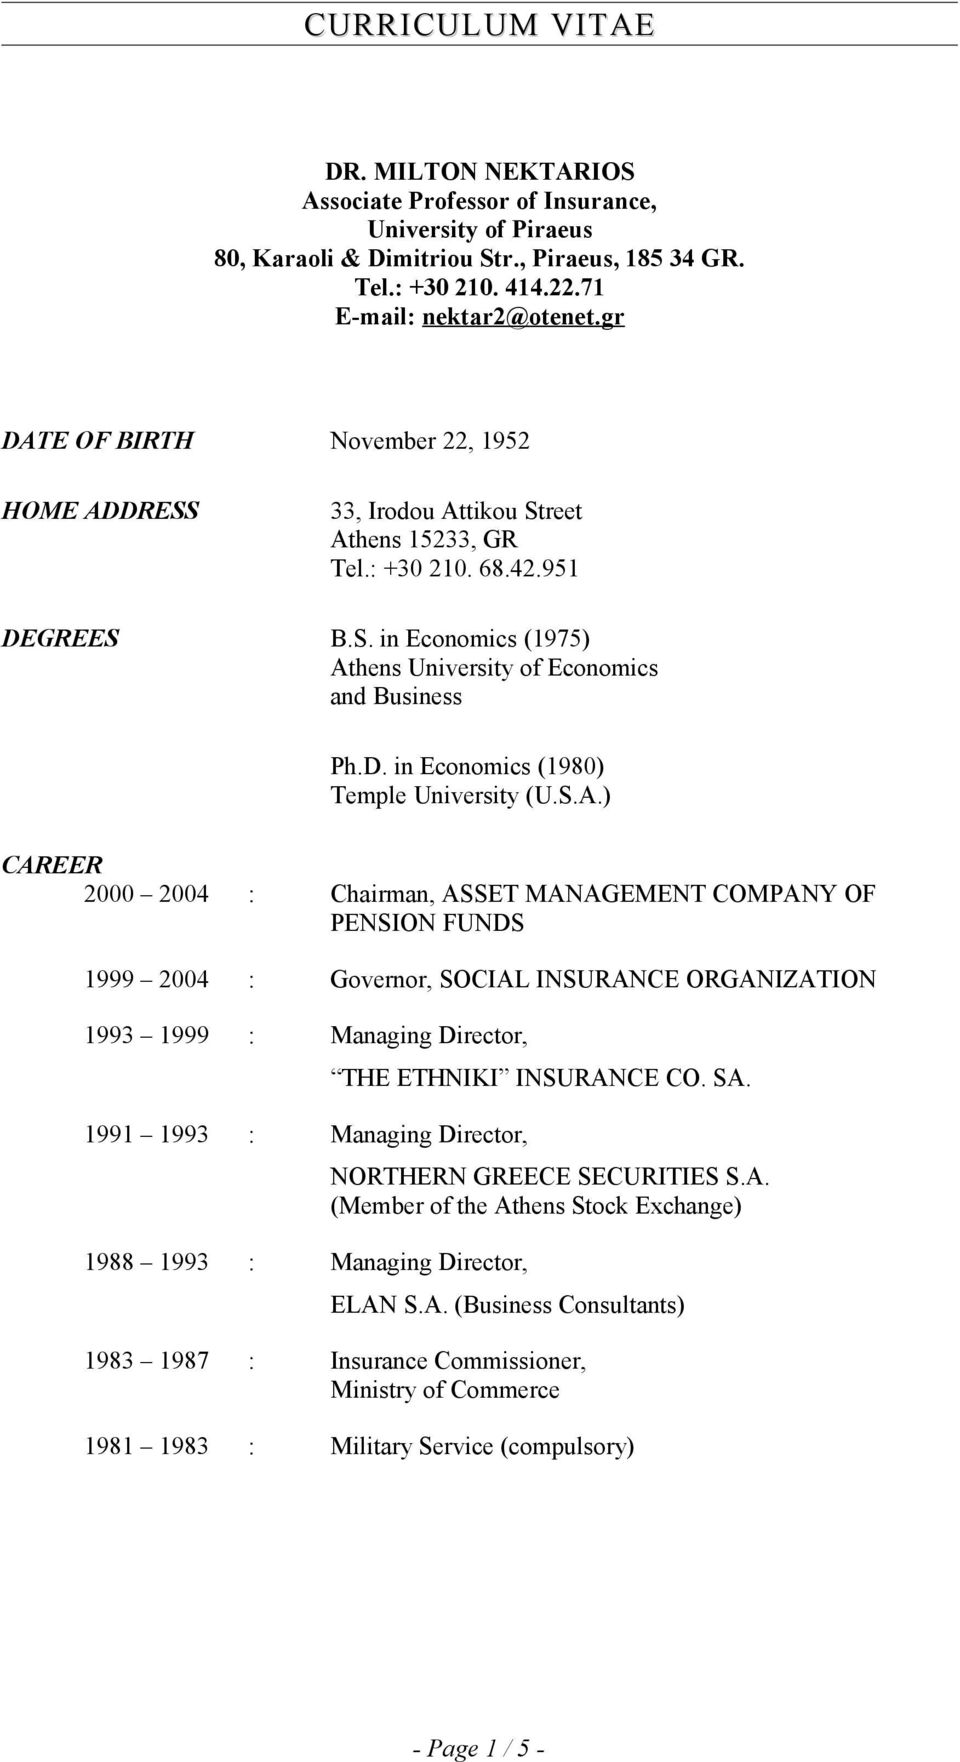 S.A.) CAREER 2000 2004 : Chairman, ASSET MANAGEMENT COMPANY OF PENSION FUNDS 1999 2004 : Governor, SOCIAL INSURANCE ORGANIZATION 1993 1999 : Managing Director, 1991 1993 : Managing Director, 1988